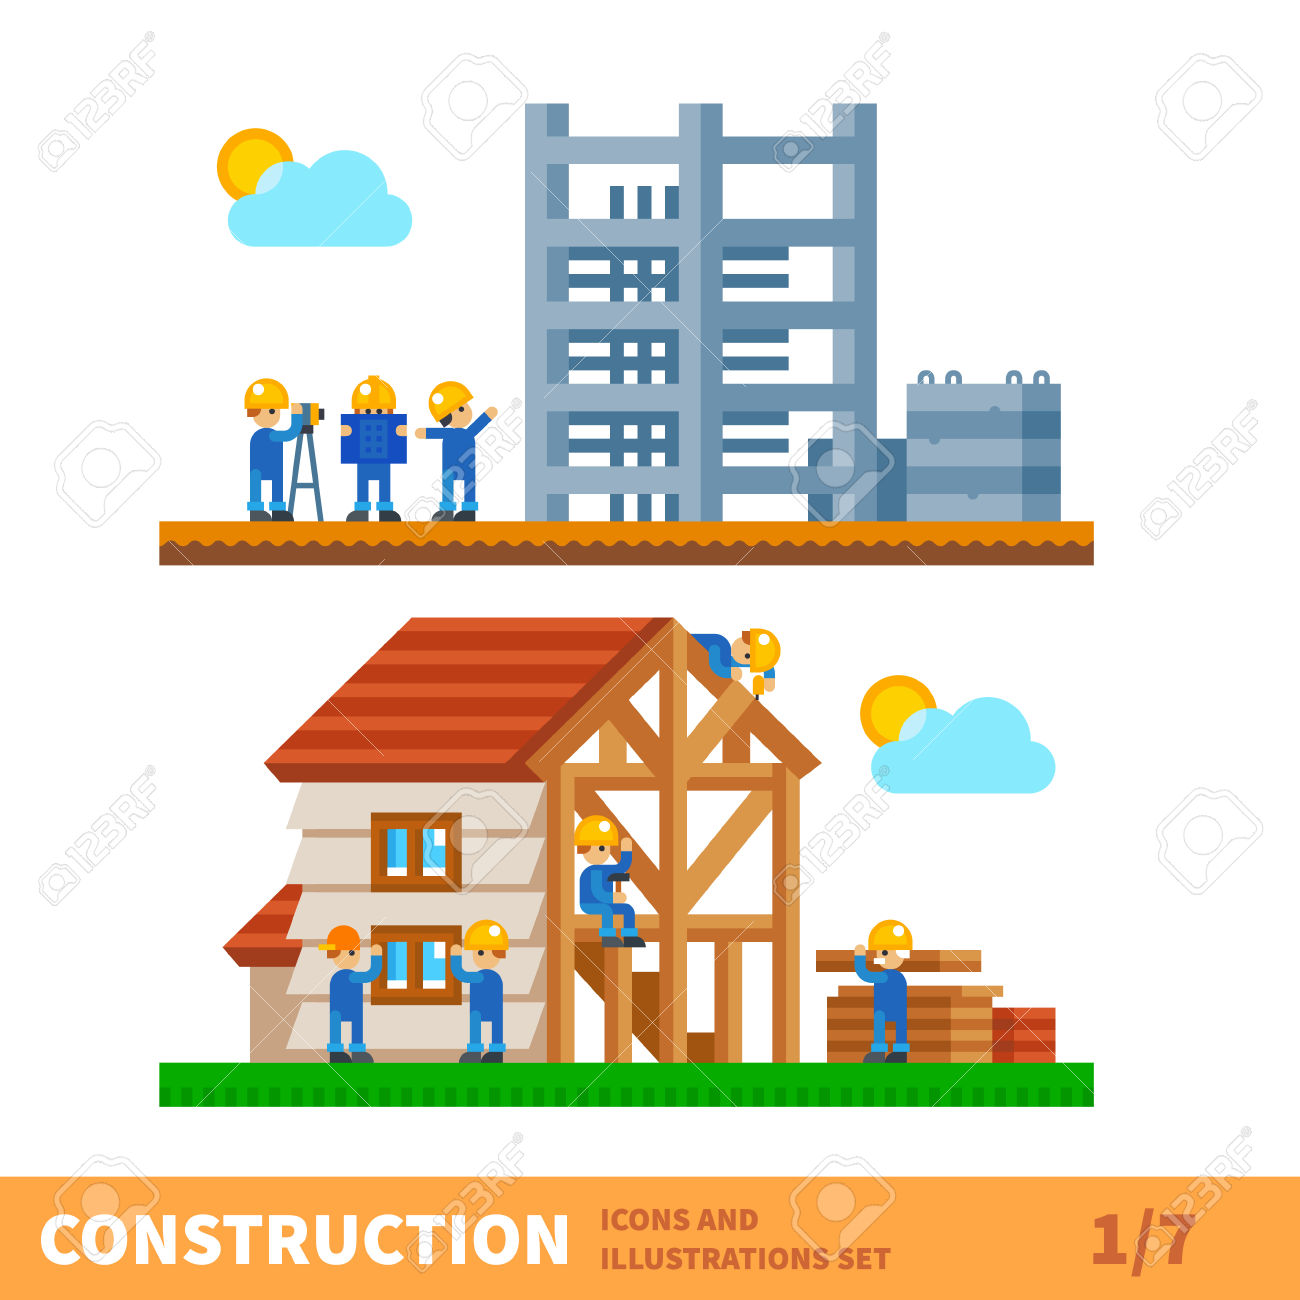 Construction workers building a house clipart.